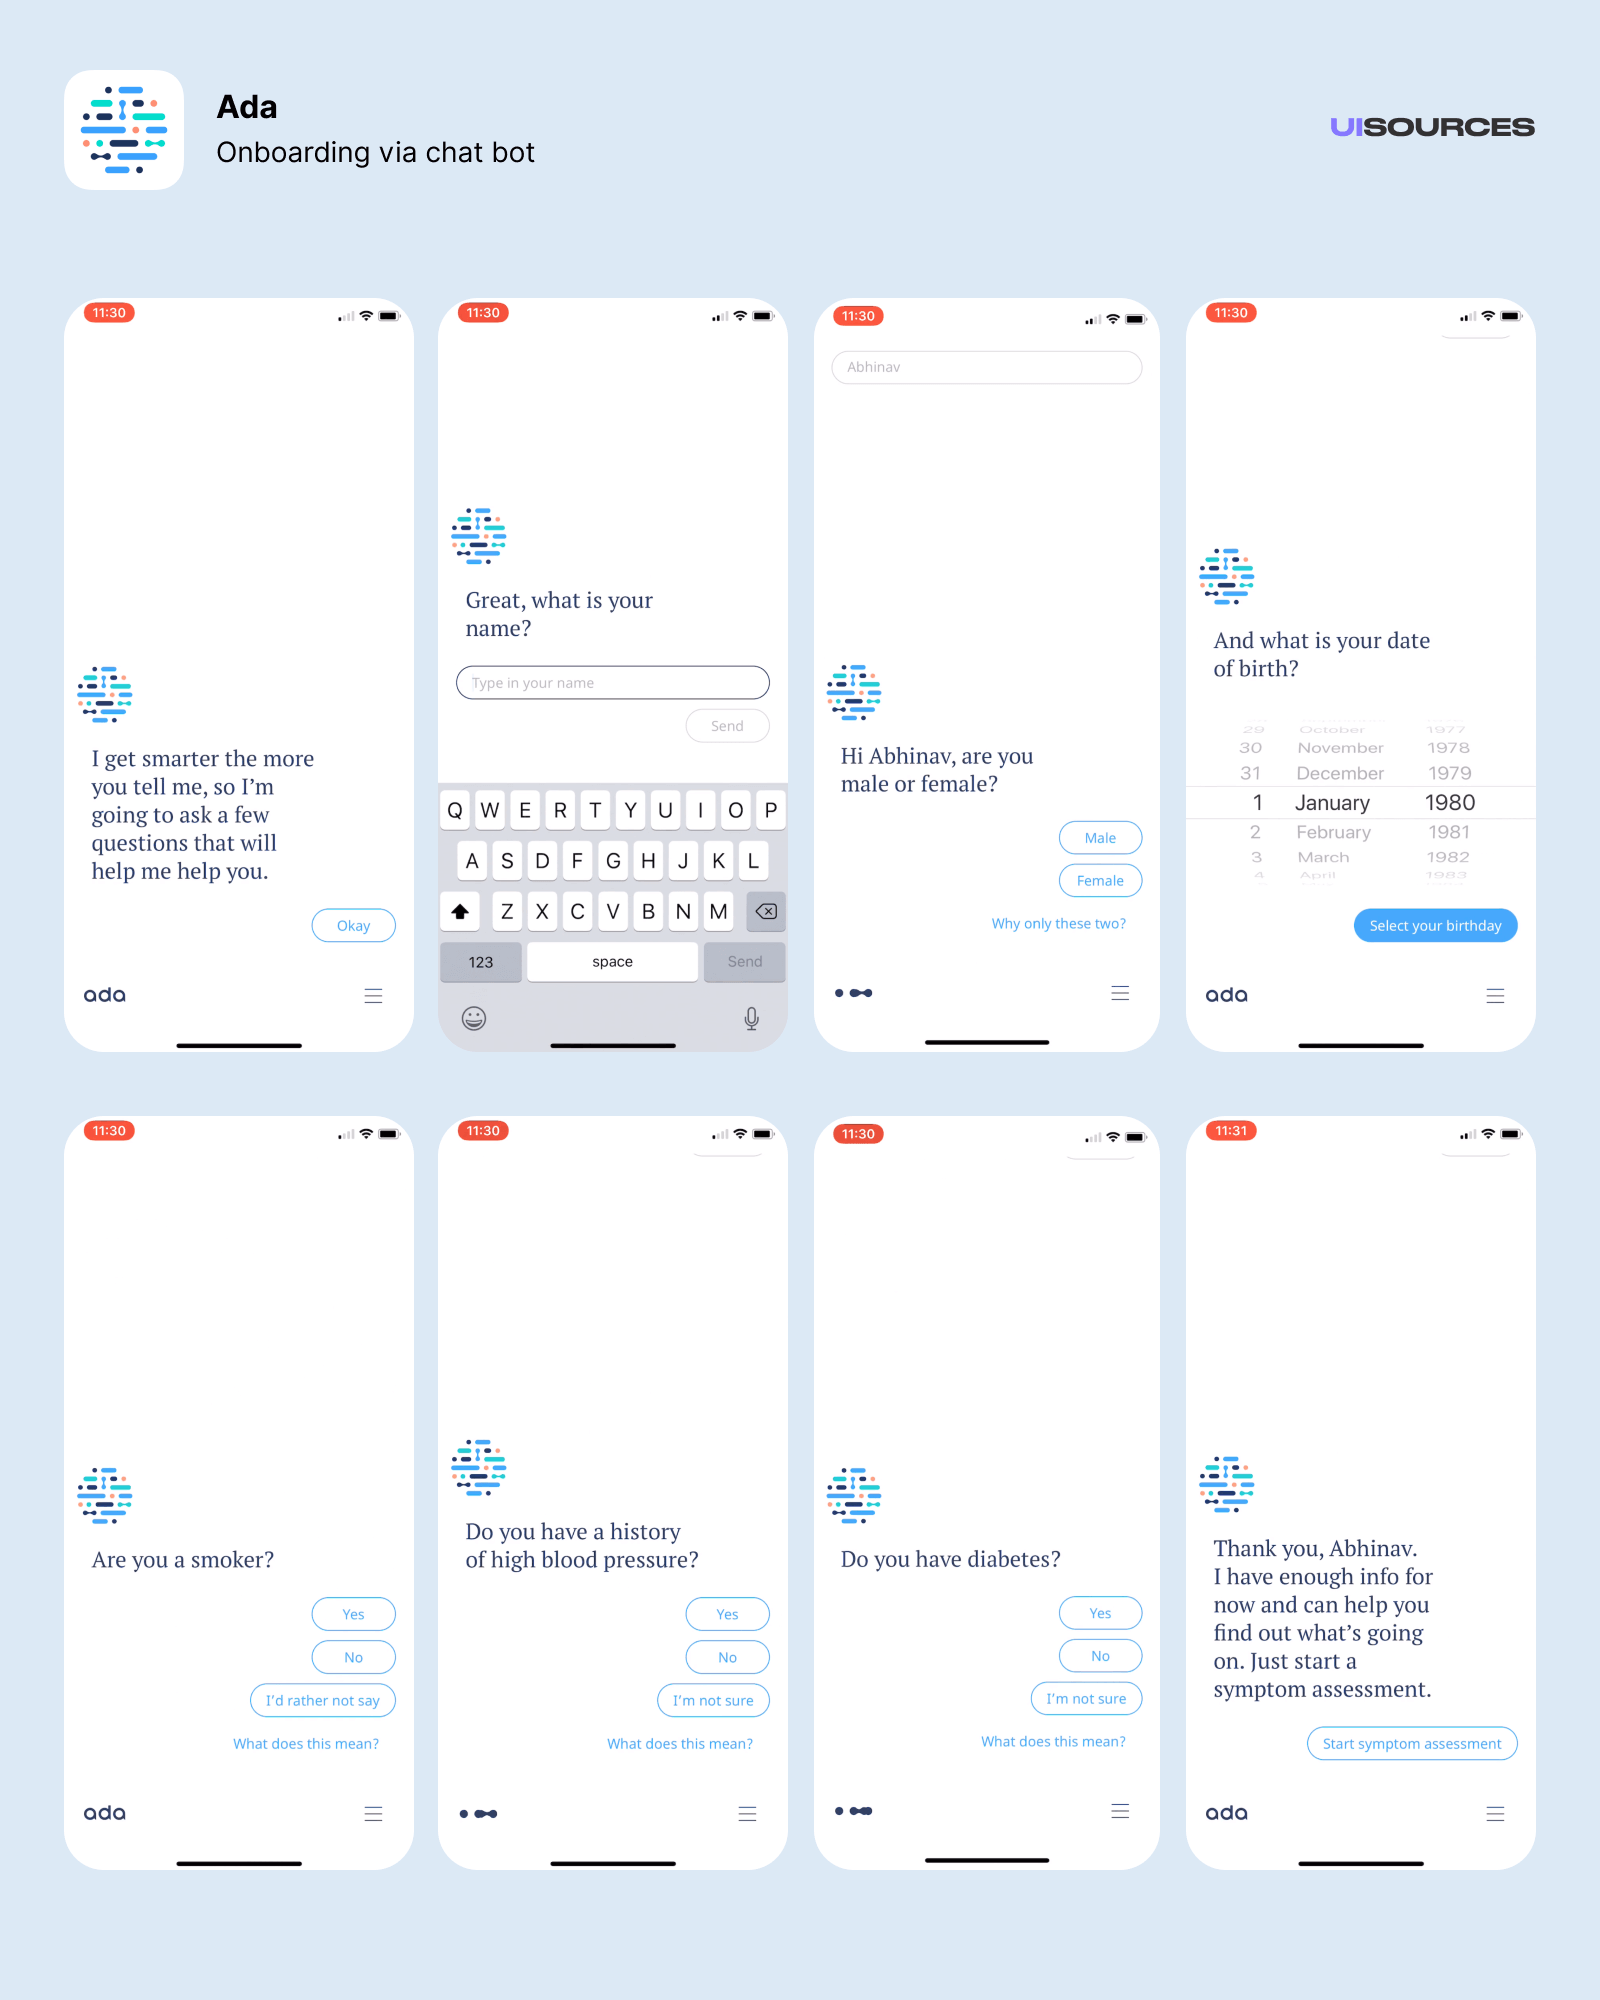 Further onboarding via chat bot